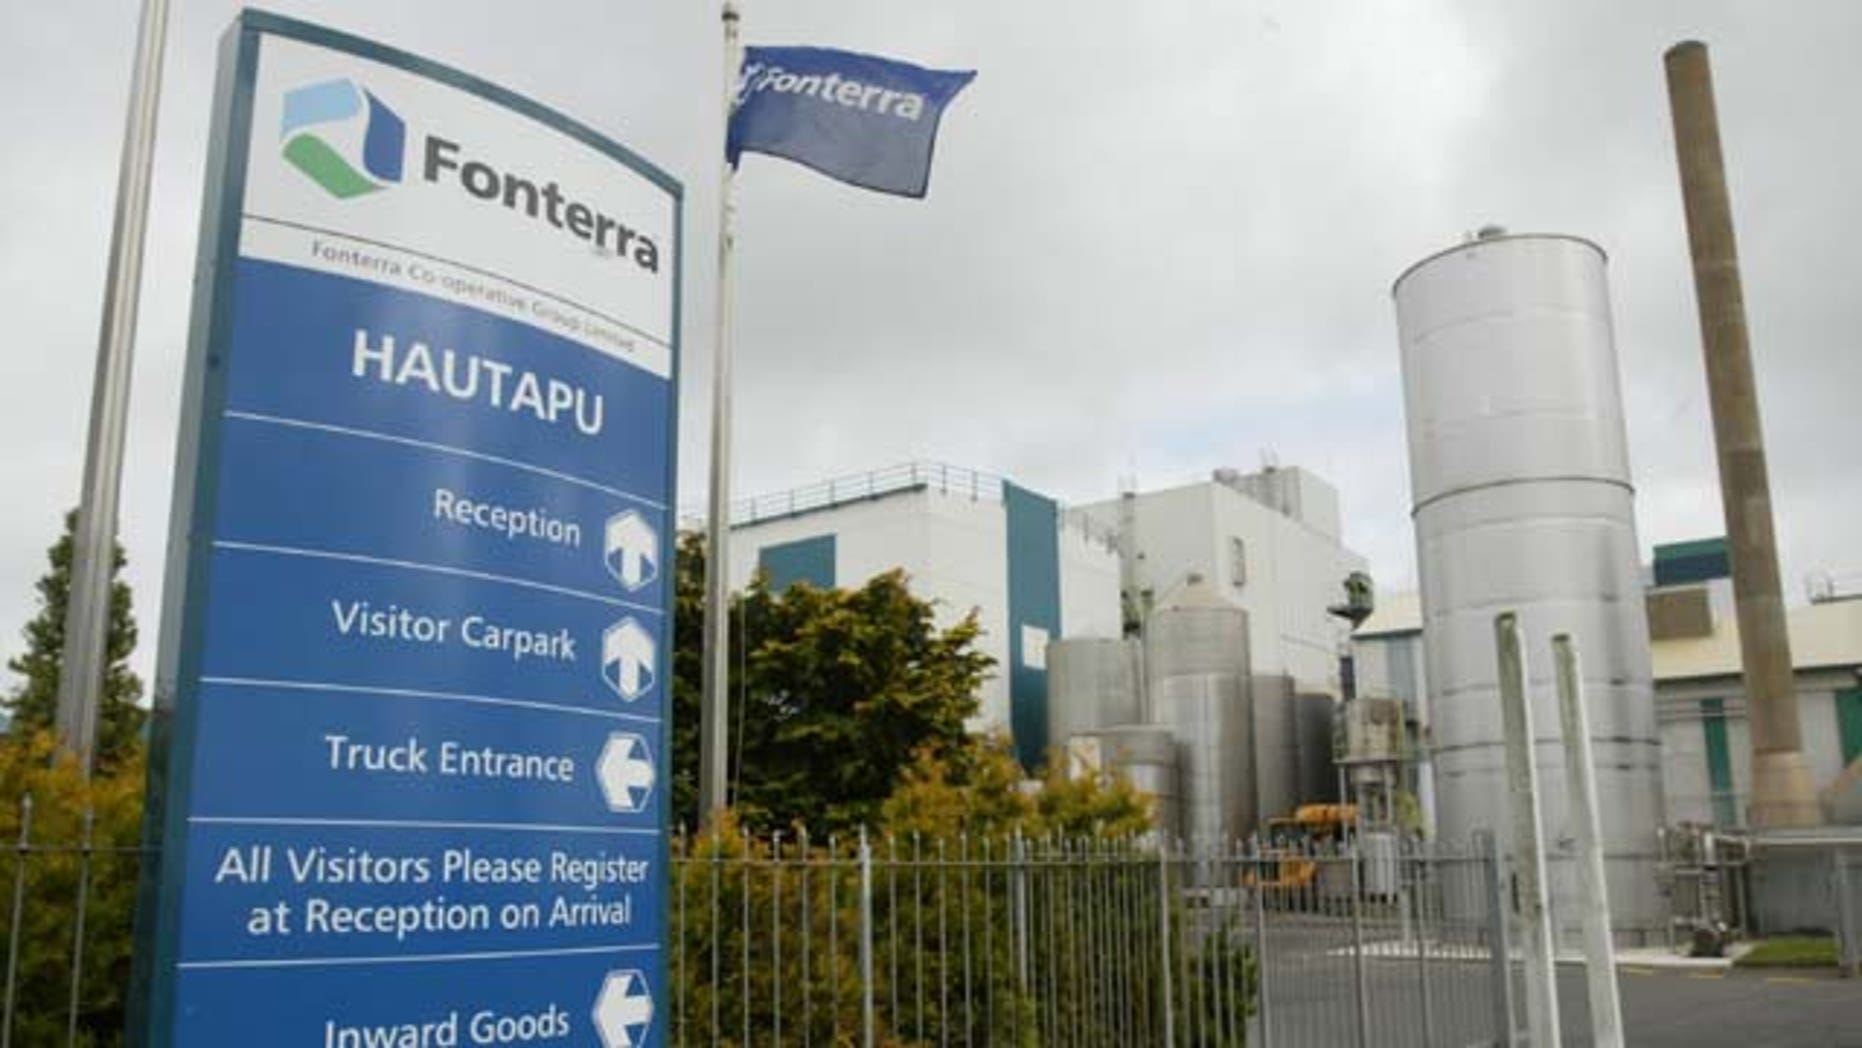 August 5, 2013: Fonterra's Hautapu dairy factory is seen in the Waikato, New Zealand. New Zealand authorities have triggered a global recall of up to 1,000 tons of dairy products across seven countries after Fonterra, the world's fourth-largest dairy company, announced tests had turned up a type of bacteria that could cause botulism. (AP Photo)